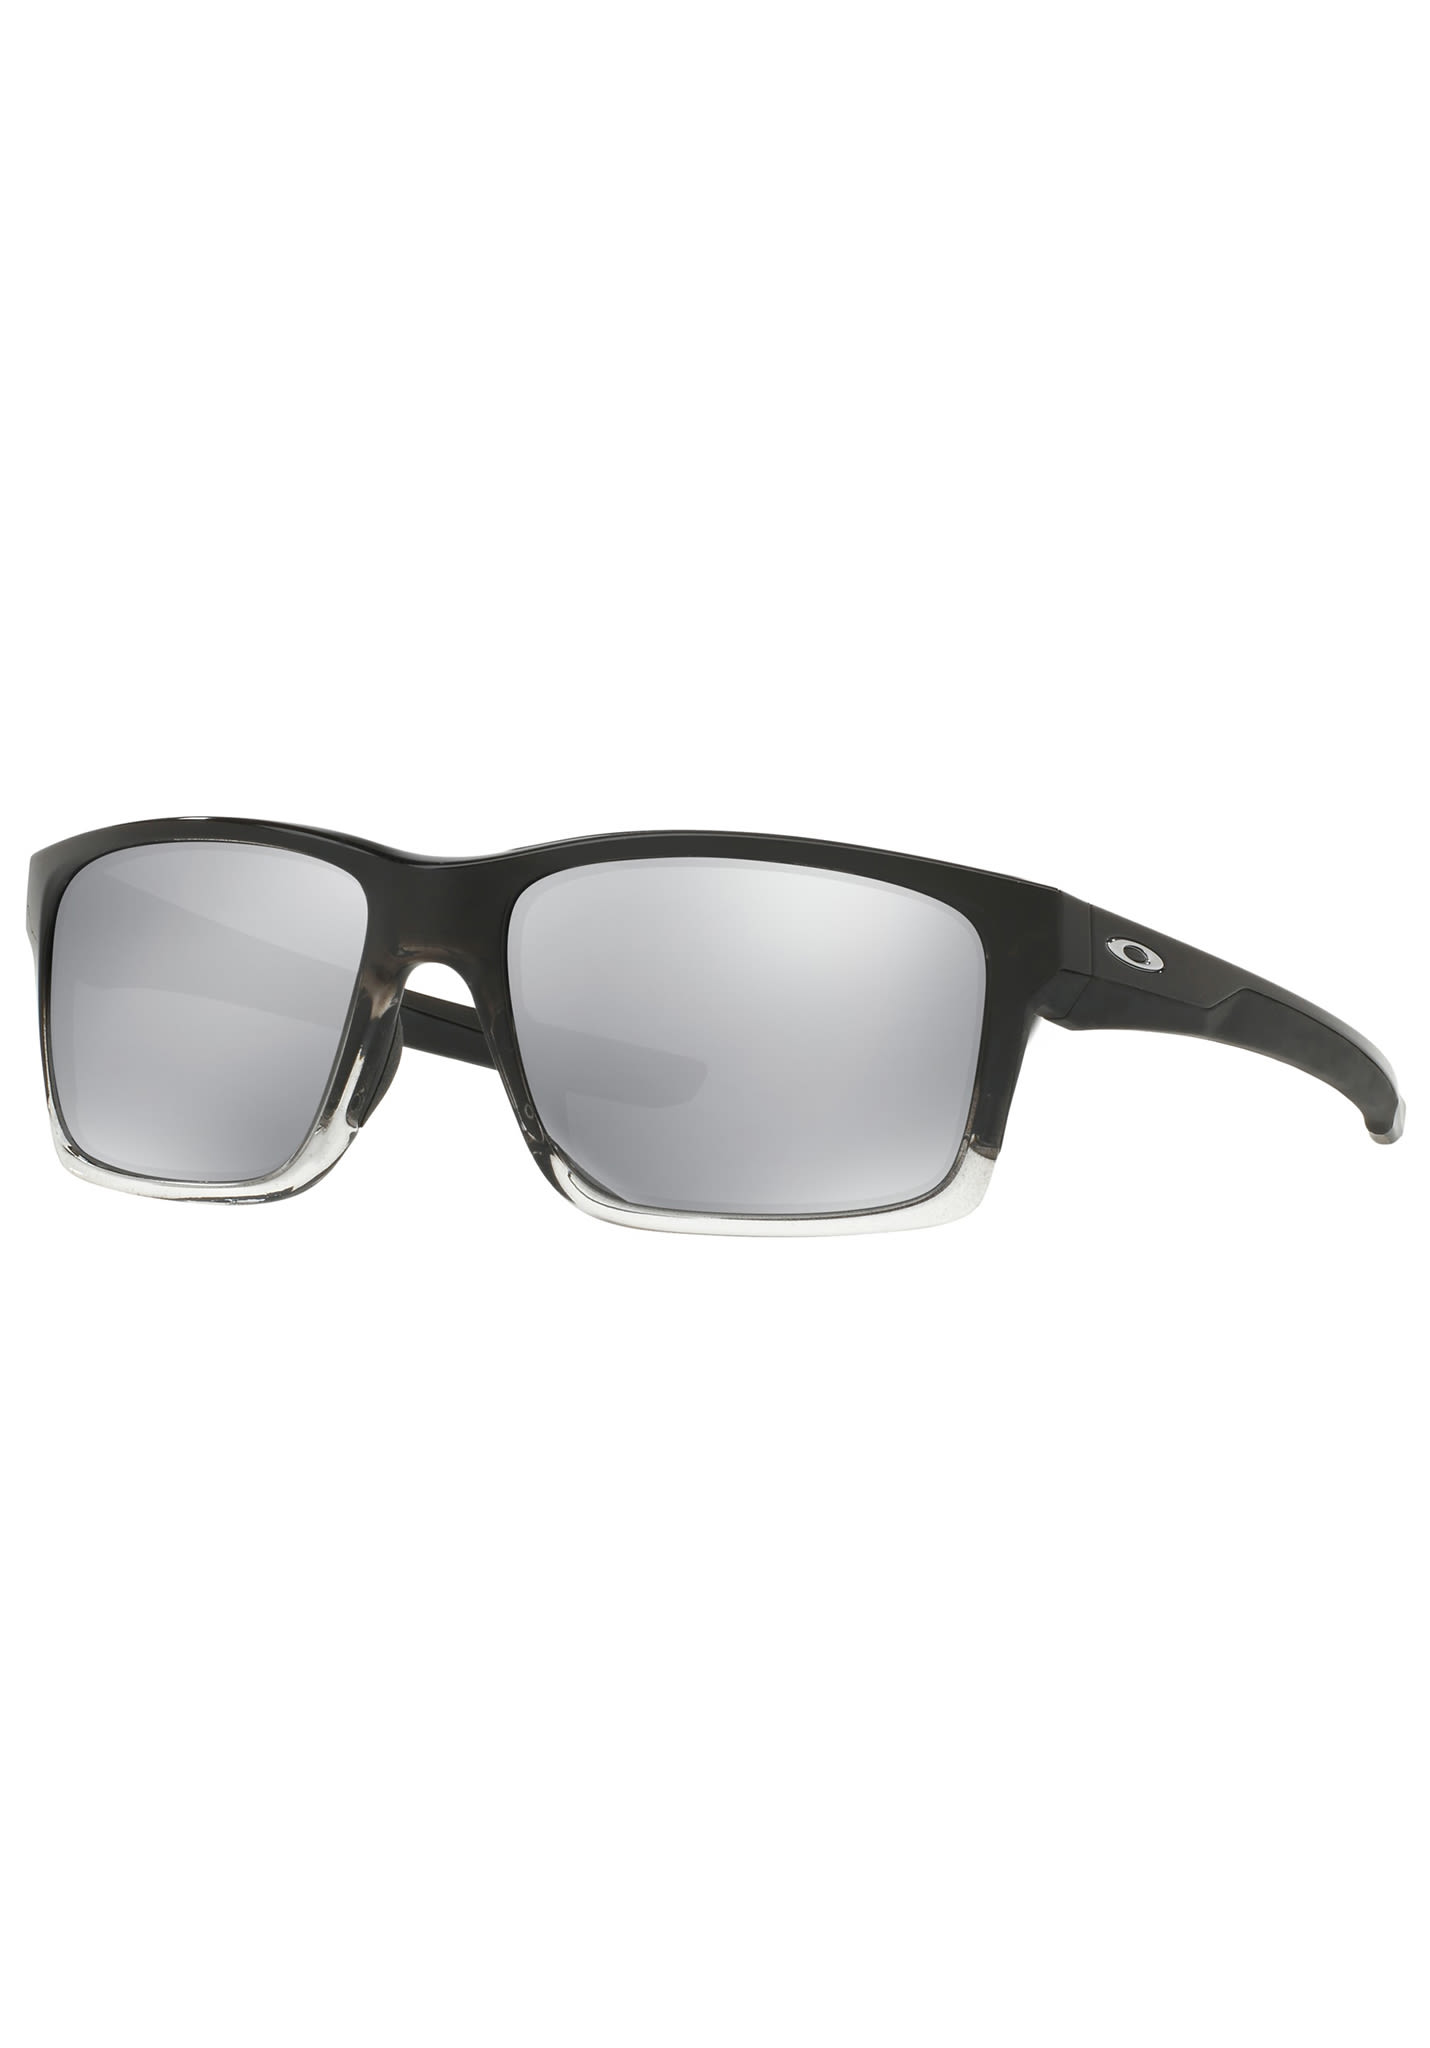 82cae57661 OAKLEY Mainlink Dark Ink Fade - Sunglasses - Grey - Planet Sports